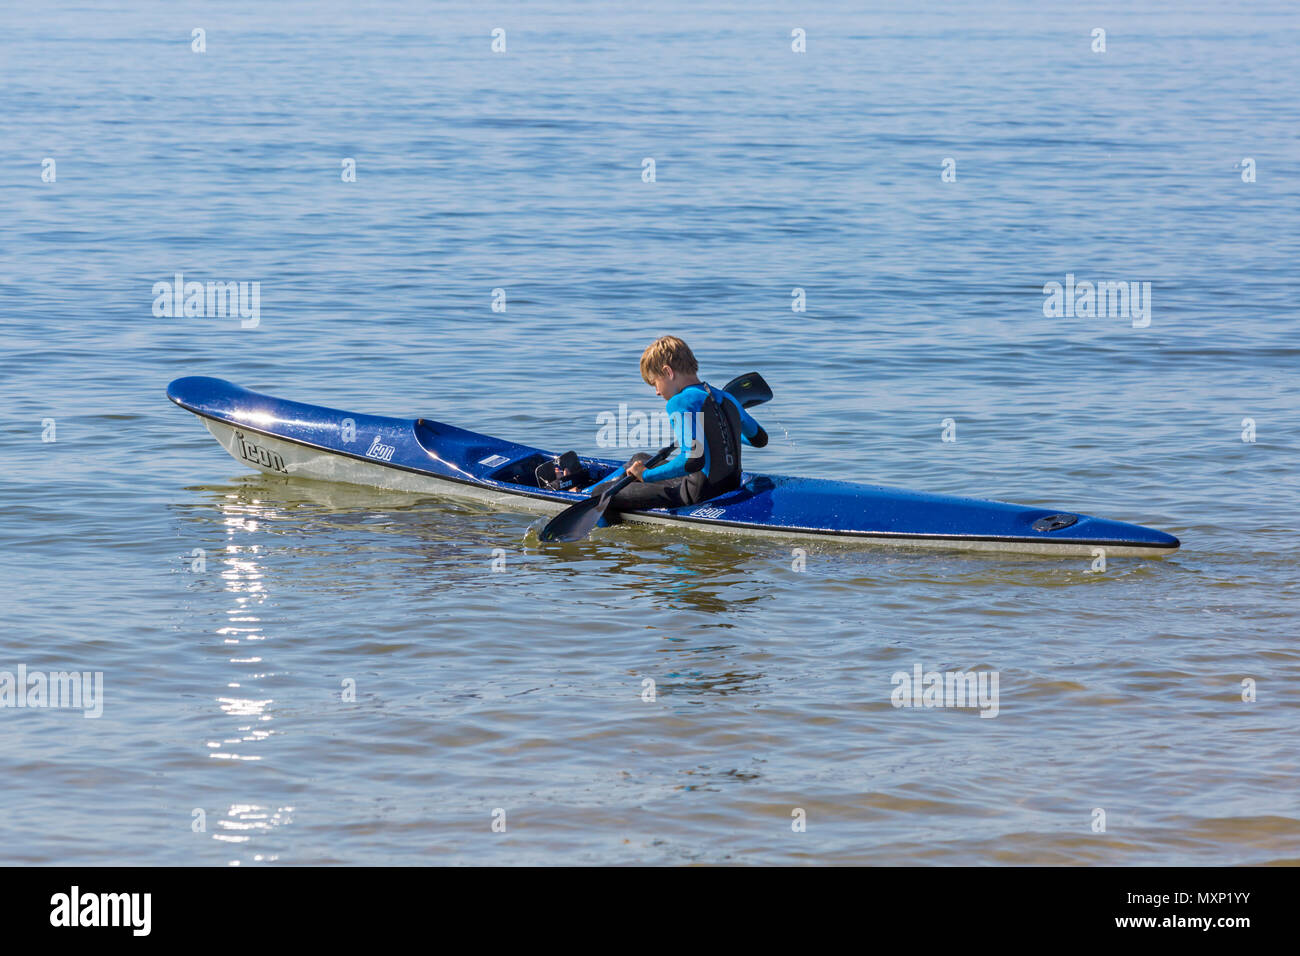 Young man in a surf ski at Branksome Chine, Poole, Dorset, England UK in June - Stock Image